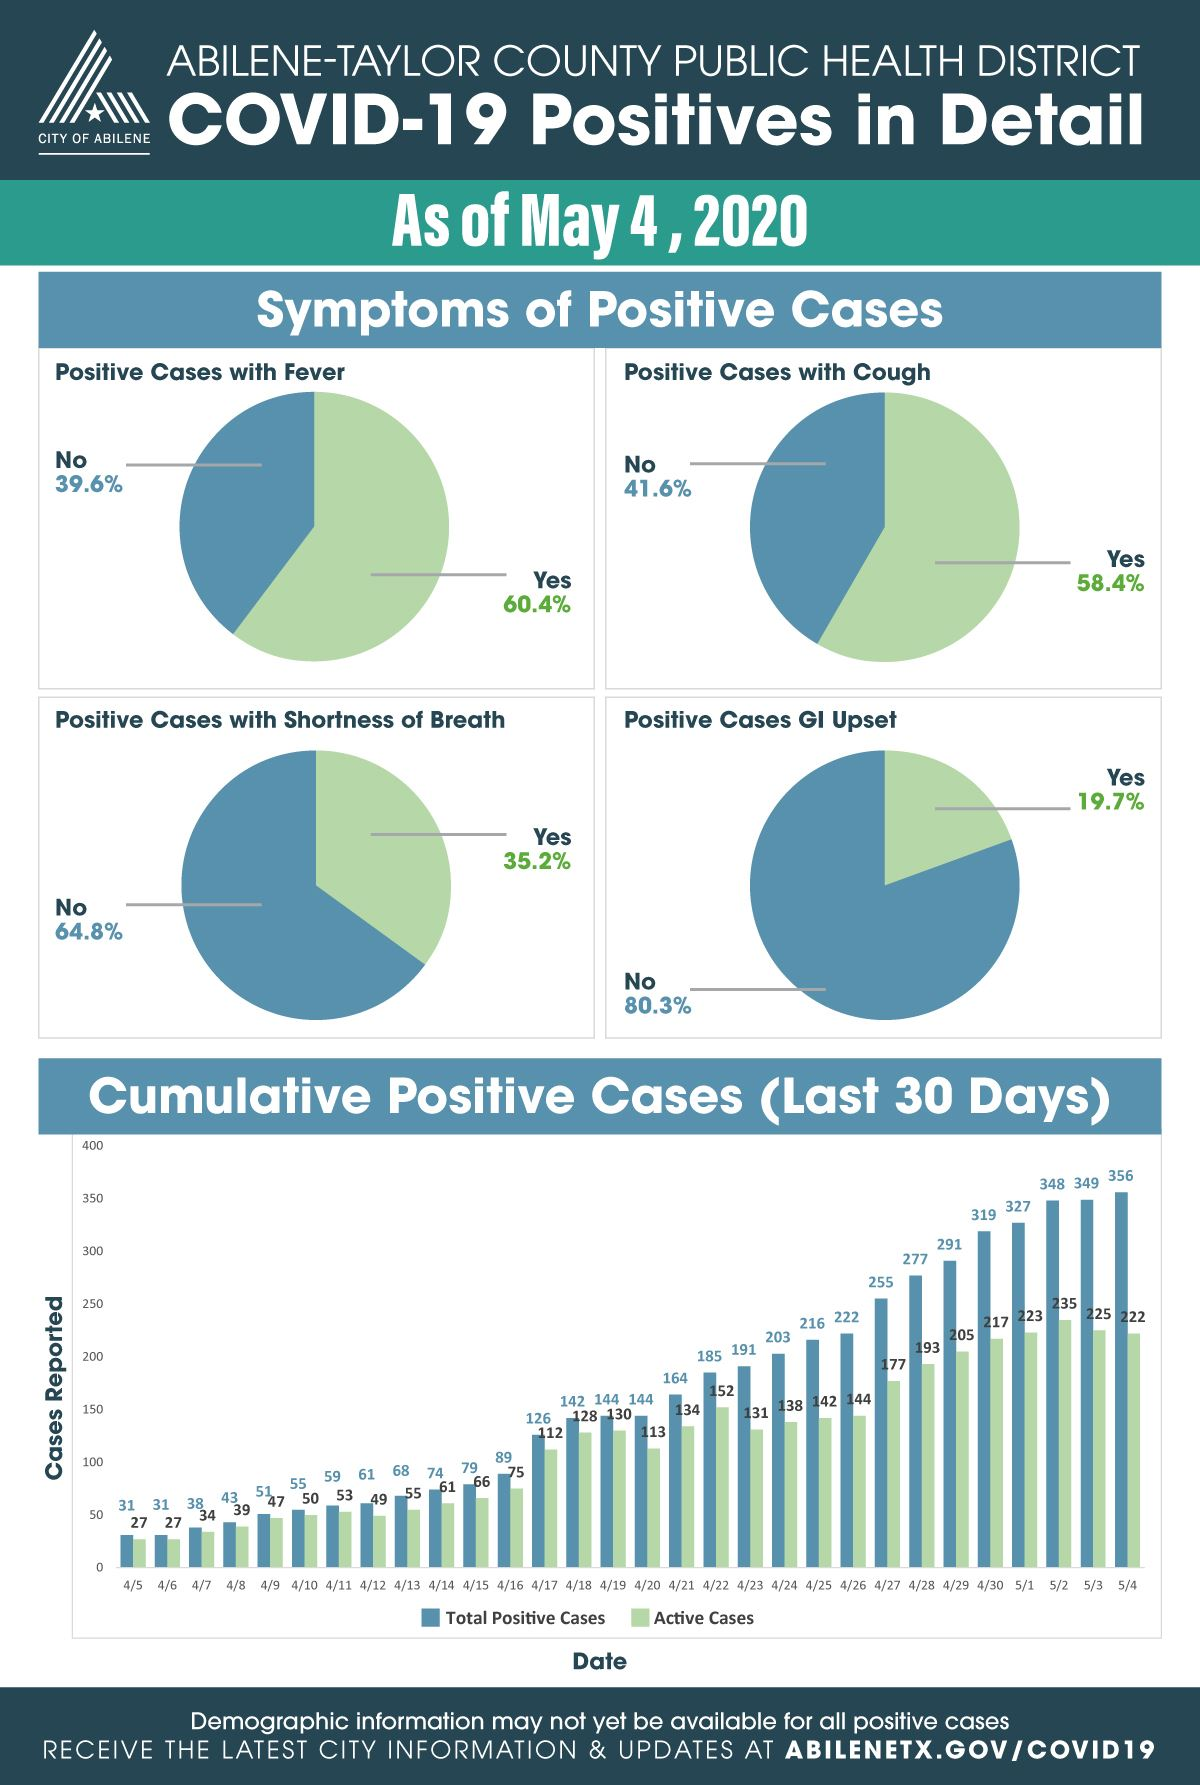 Expanded statistics for COVID-19 cases as of May 4, 2020